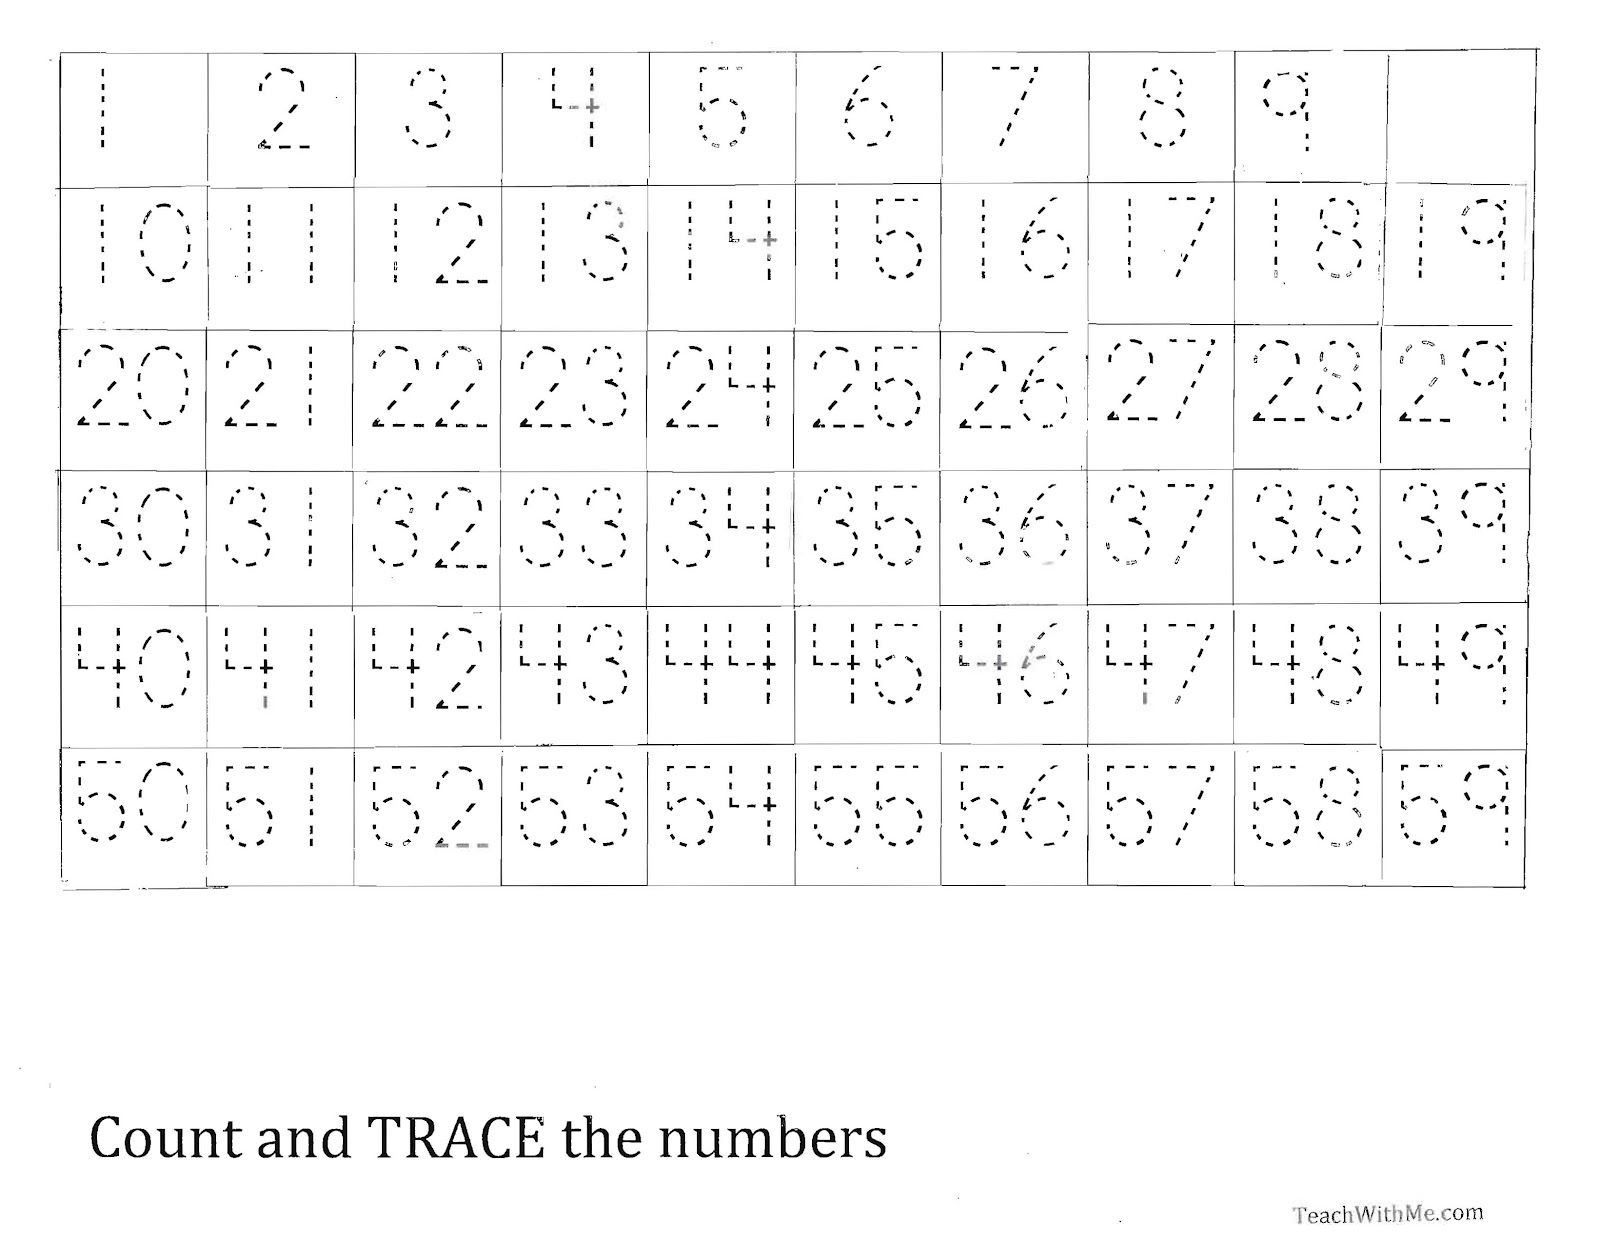 Trace The Number 1 59 Worksheet